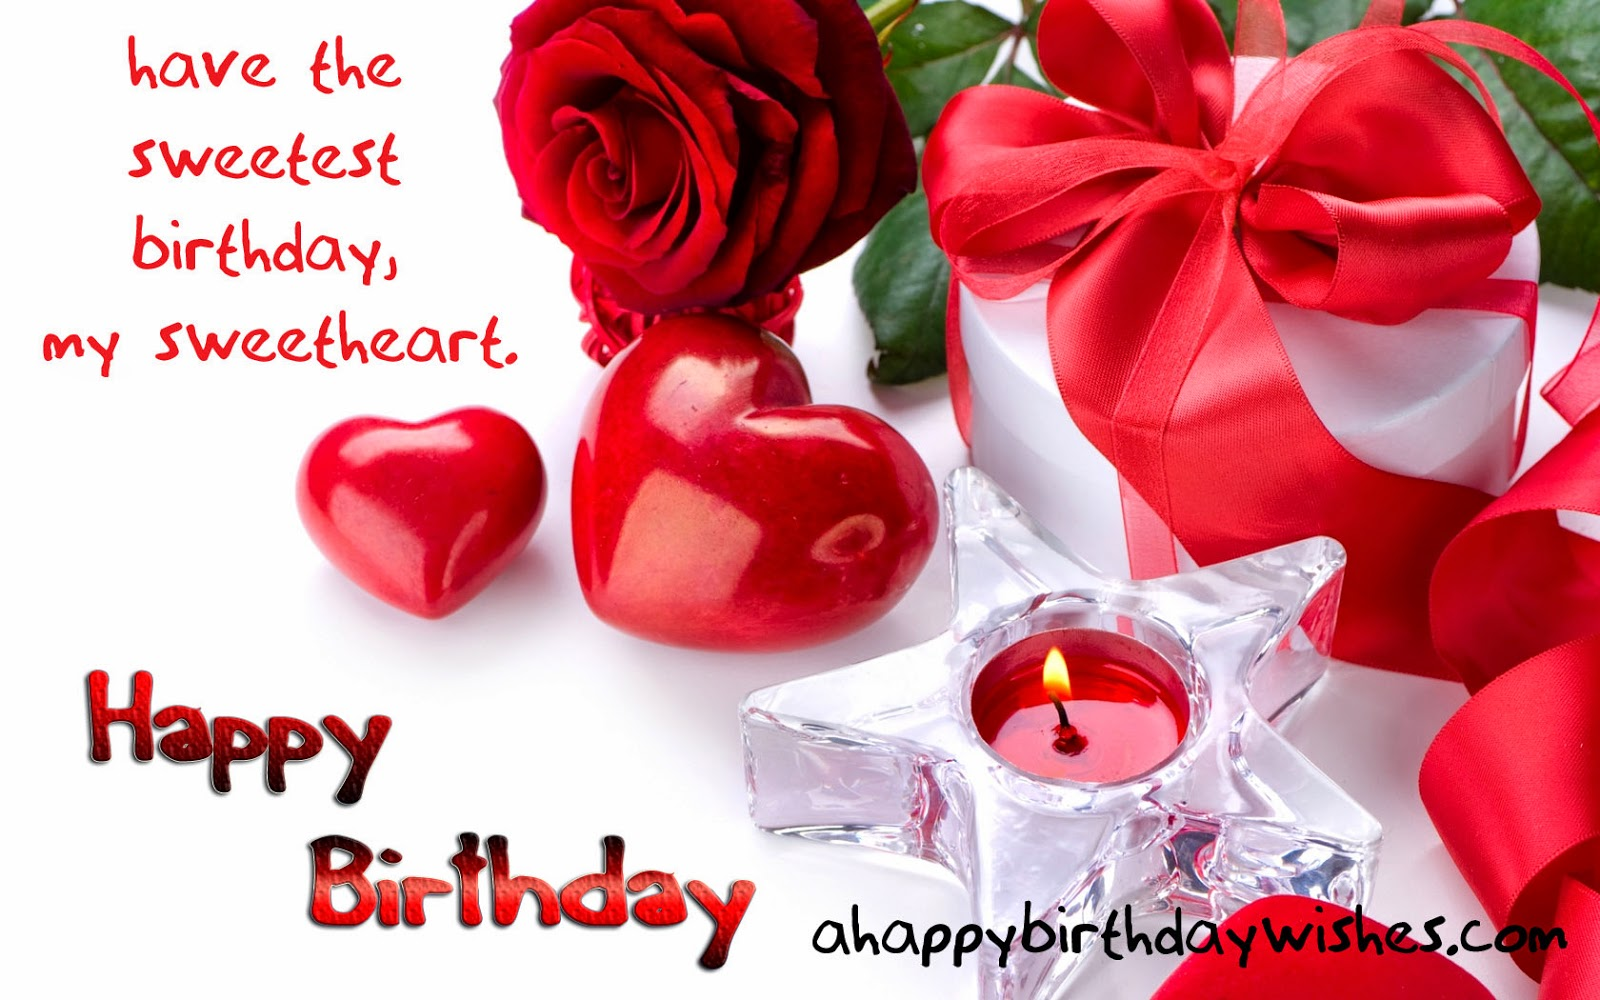 Happy Birthday Darling Heartfelt Wishes That Can Express Your Love To Girlfriend On Her 1